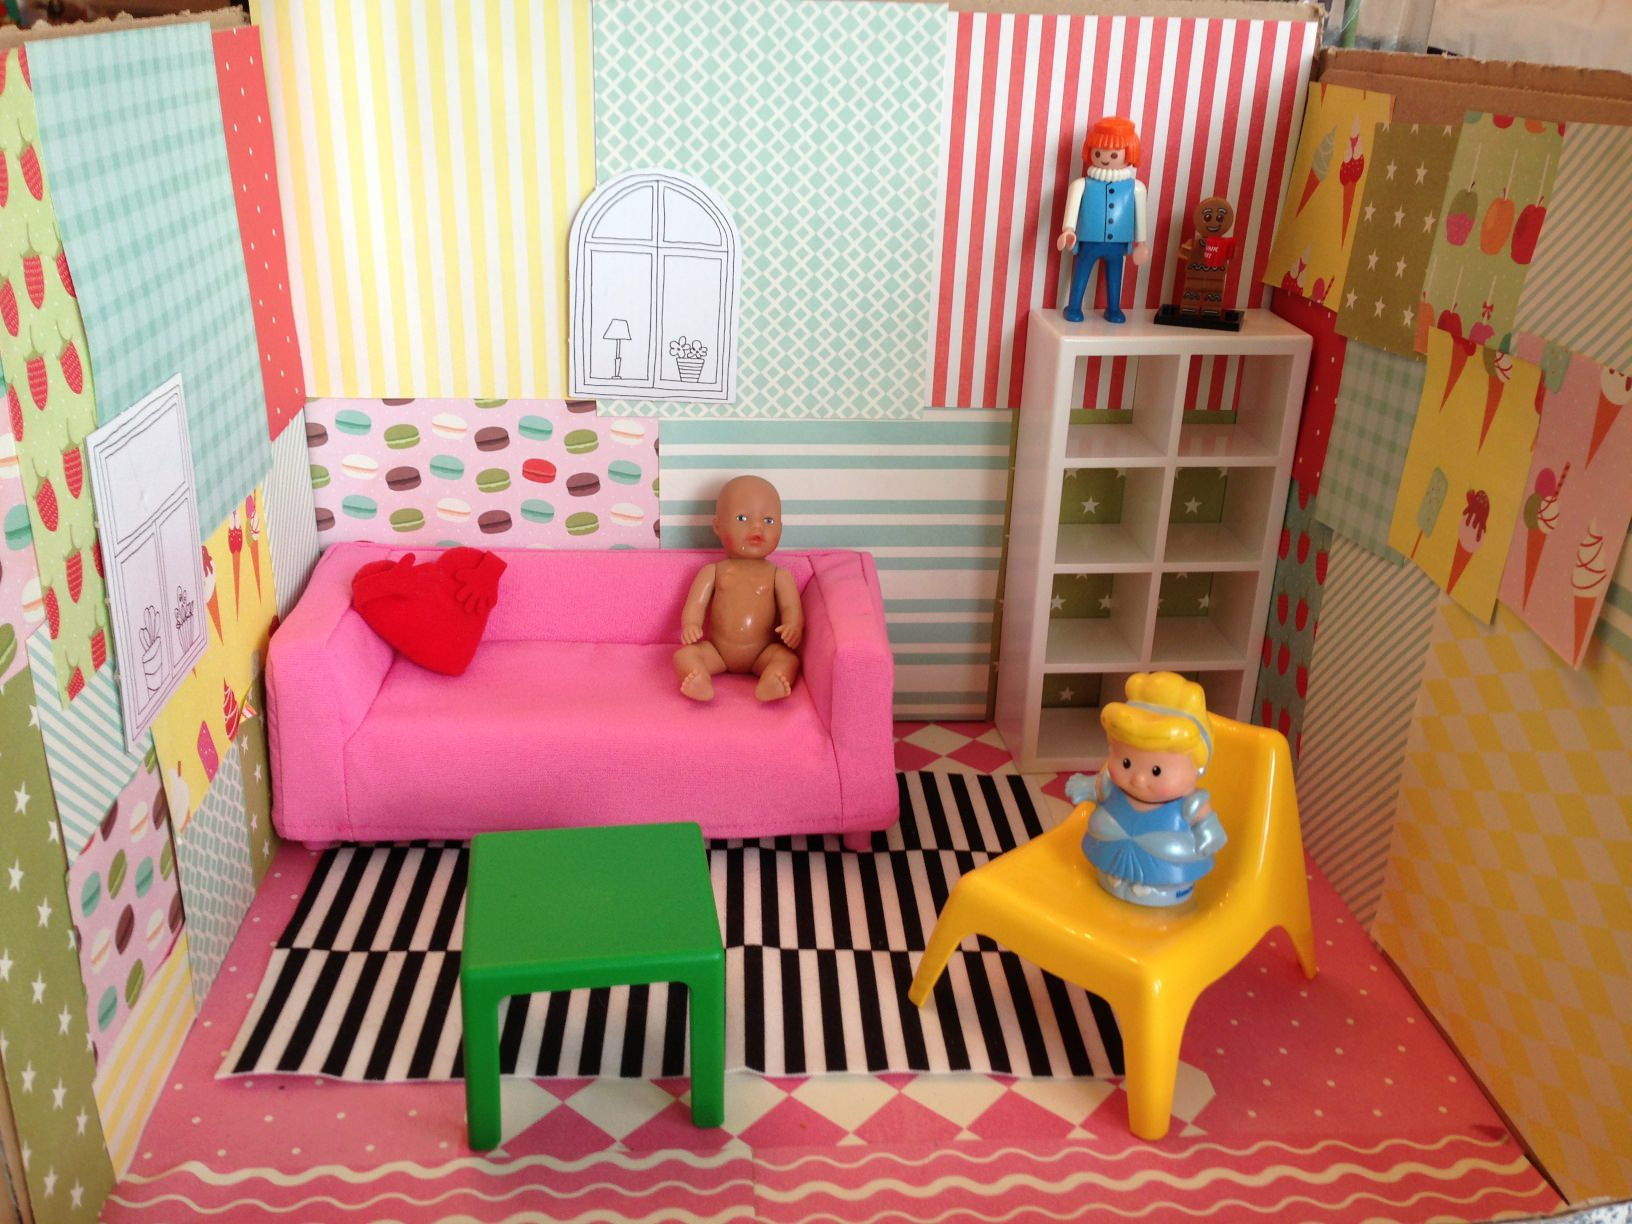 ikea dollshouse